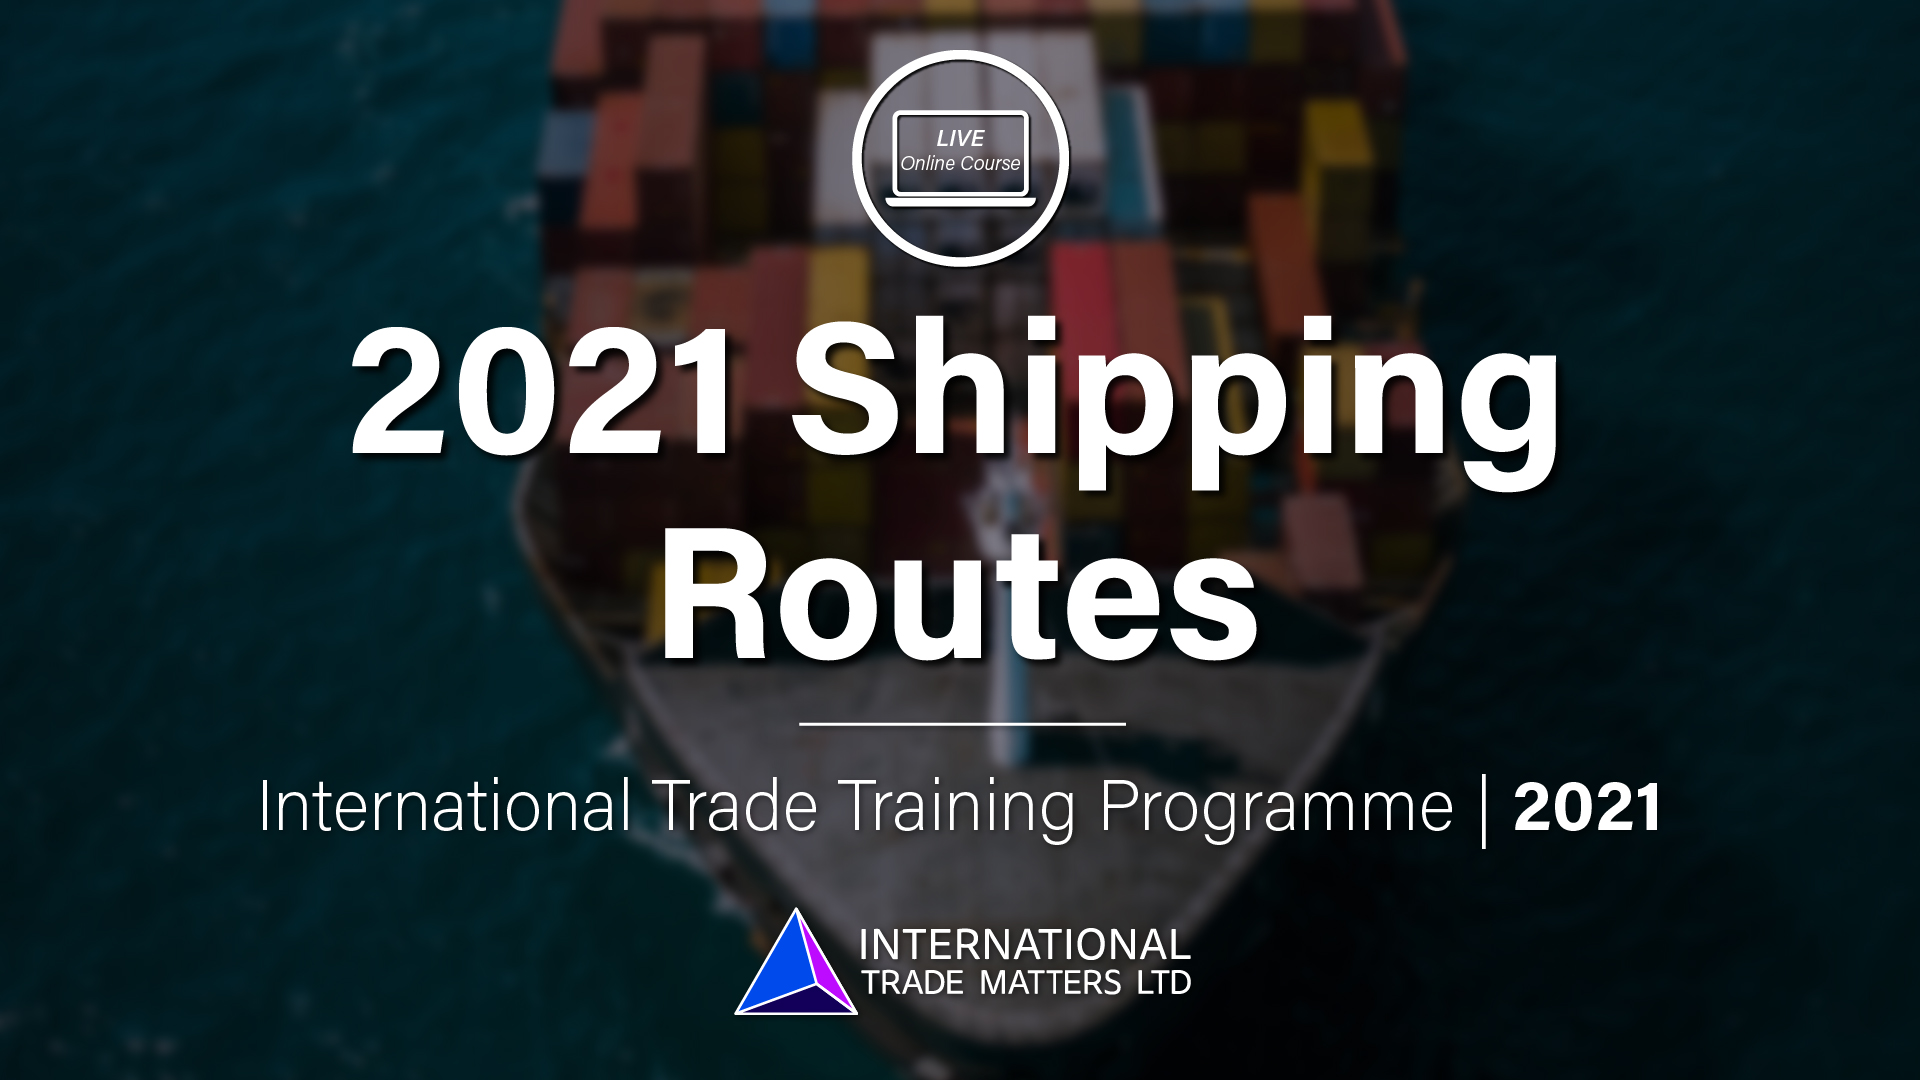 2021 Shipping Routes - An Online Course